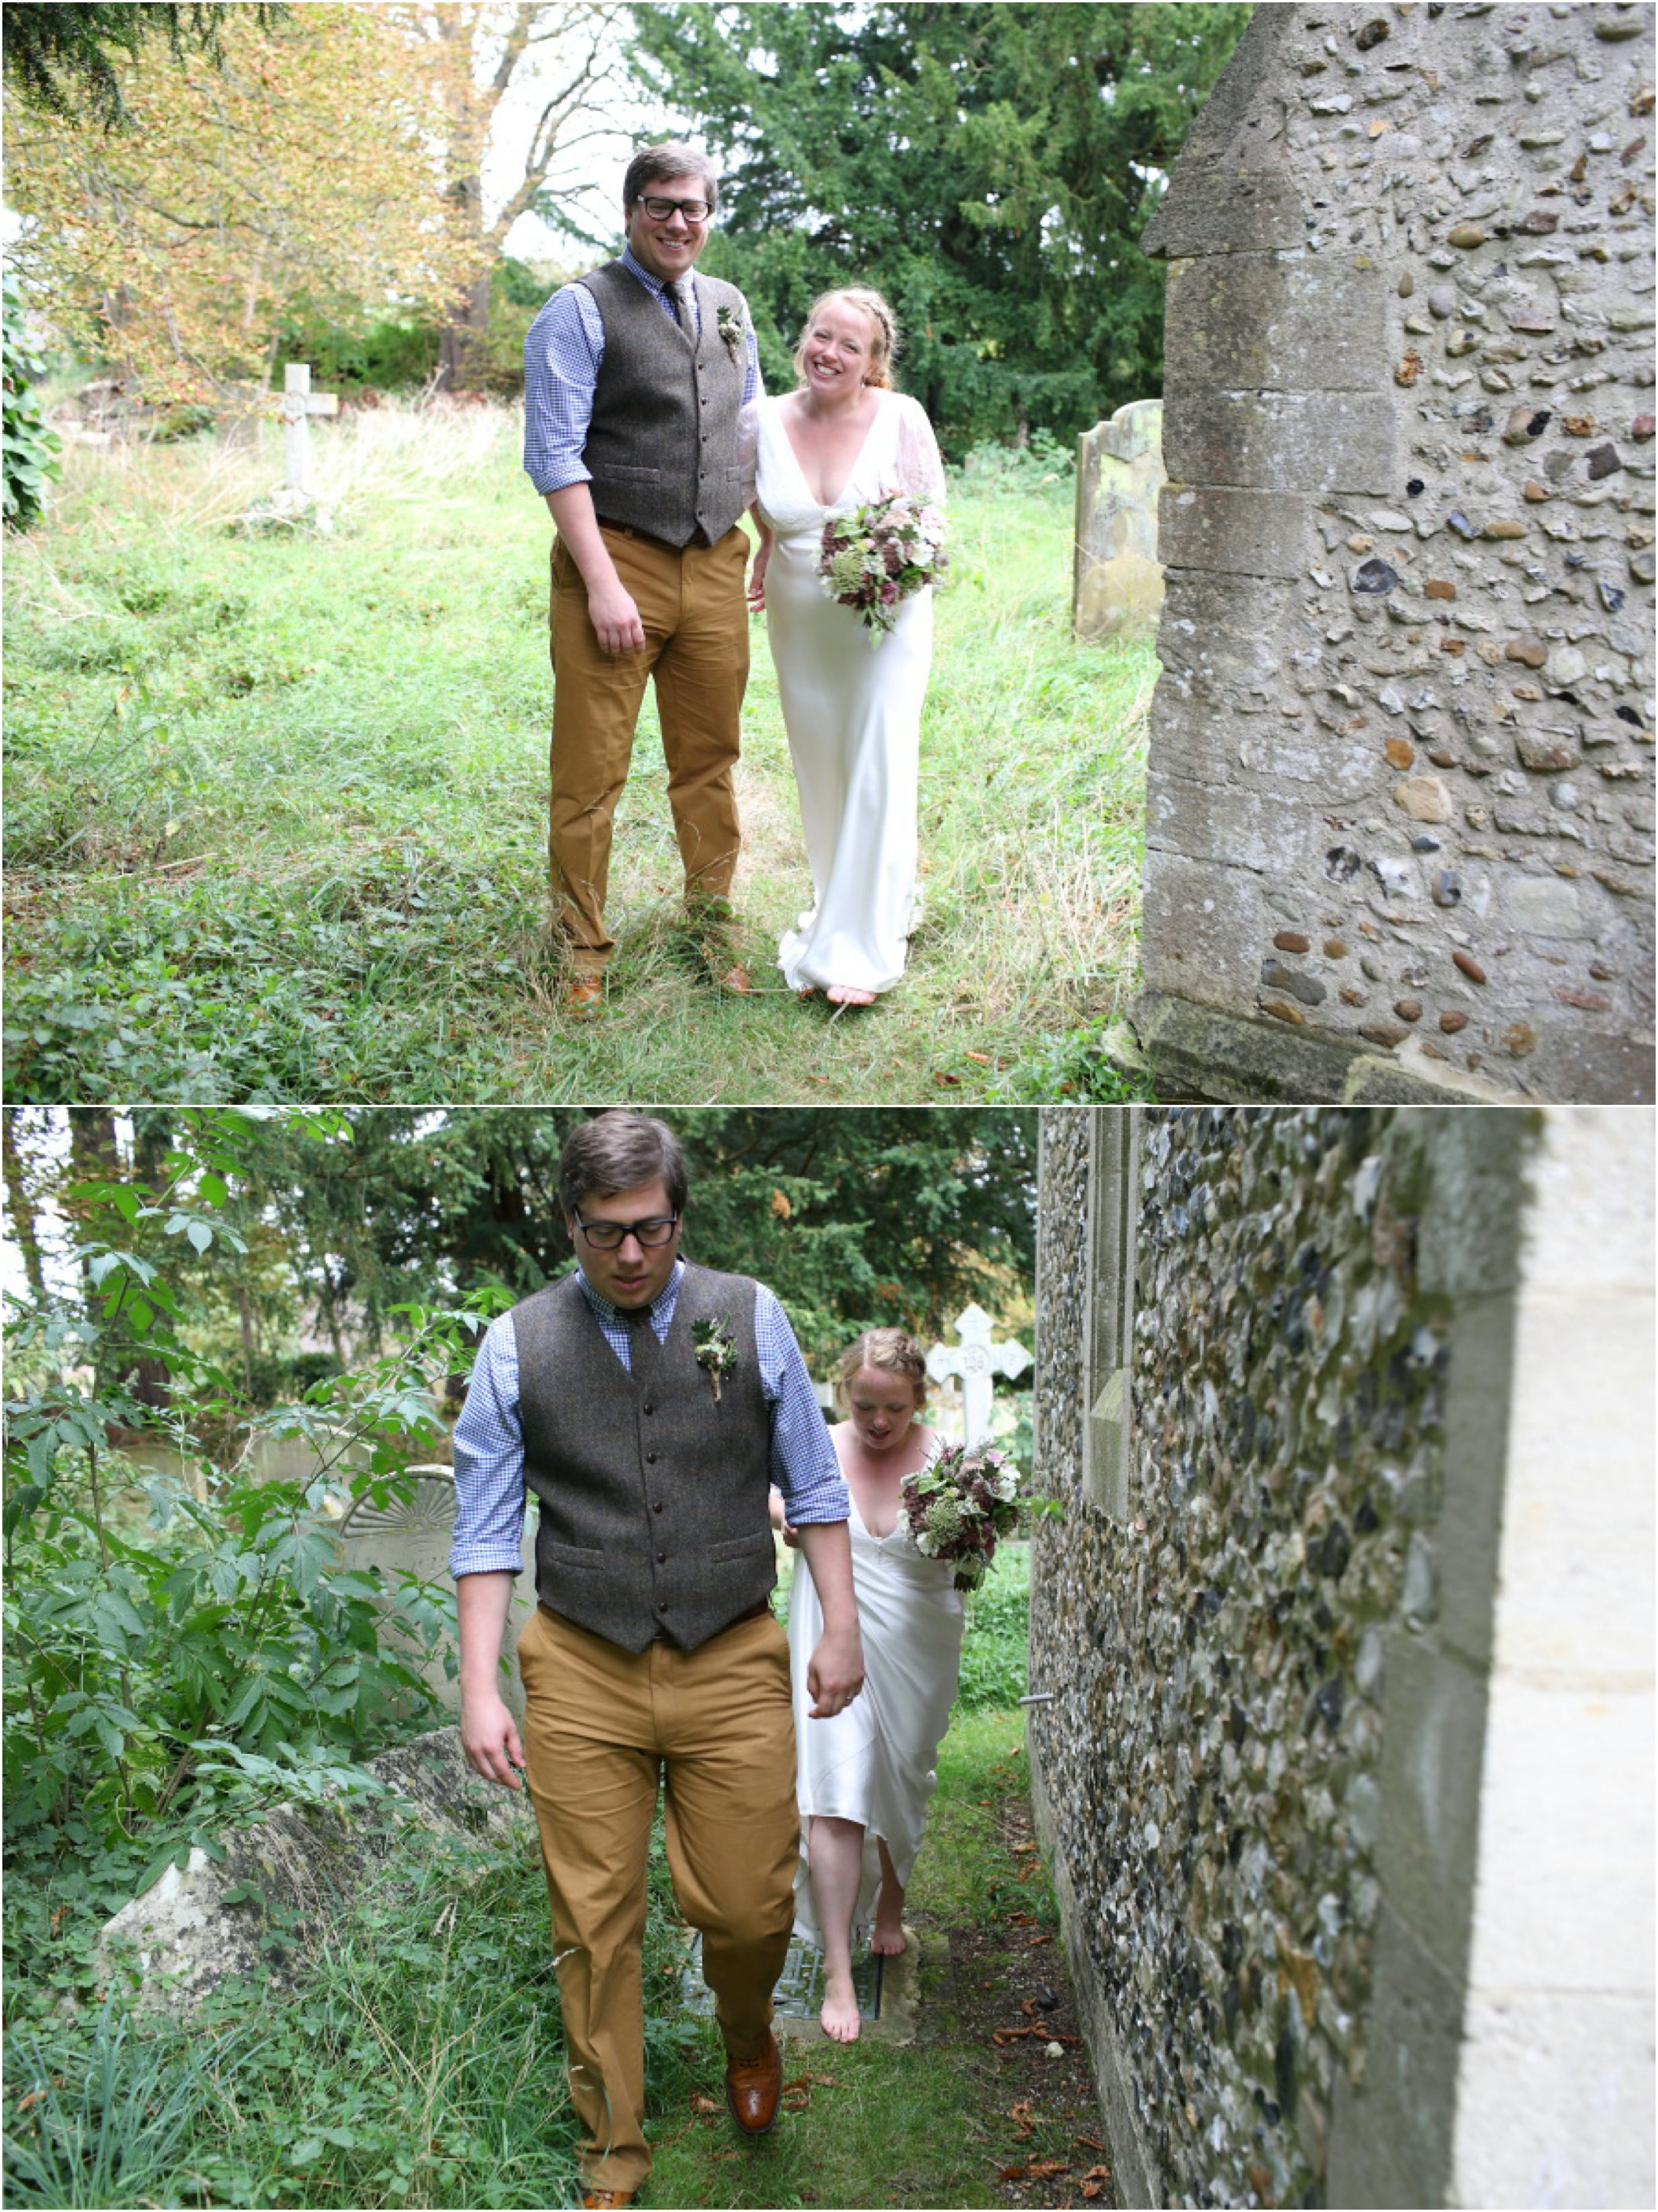 Stapleford Church wedding followed by rustic reception at Childerley Long Barn